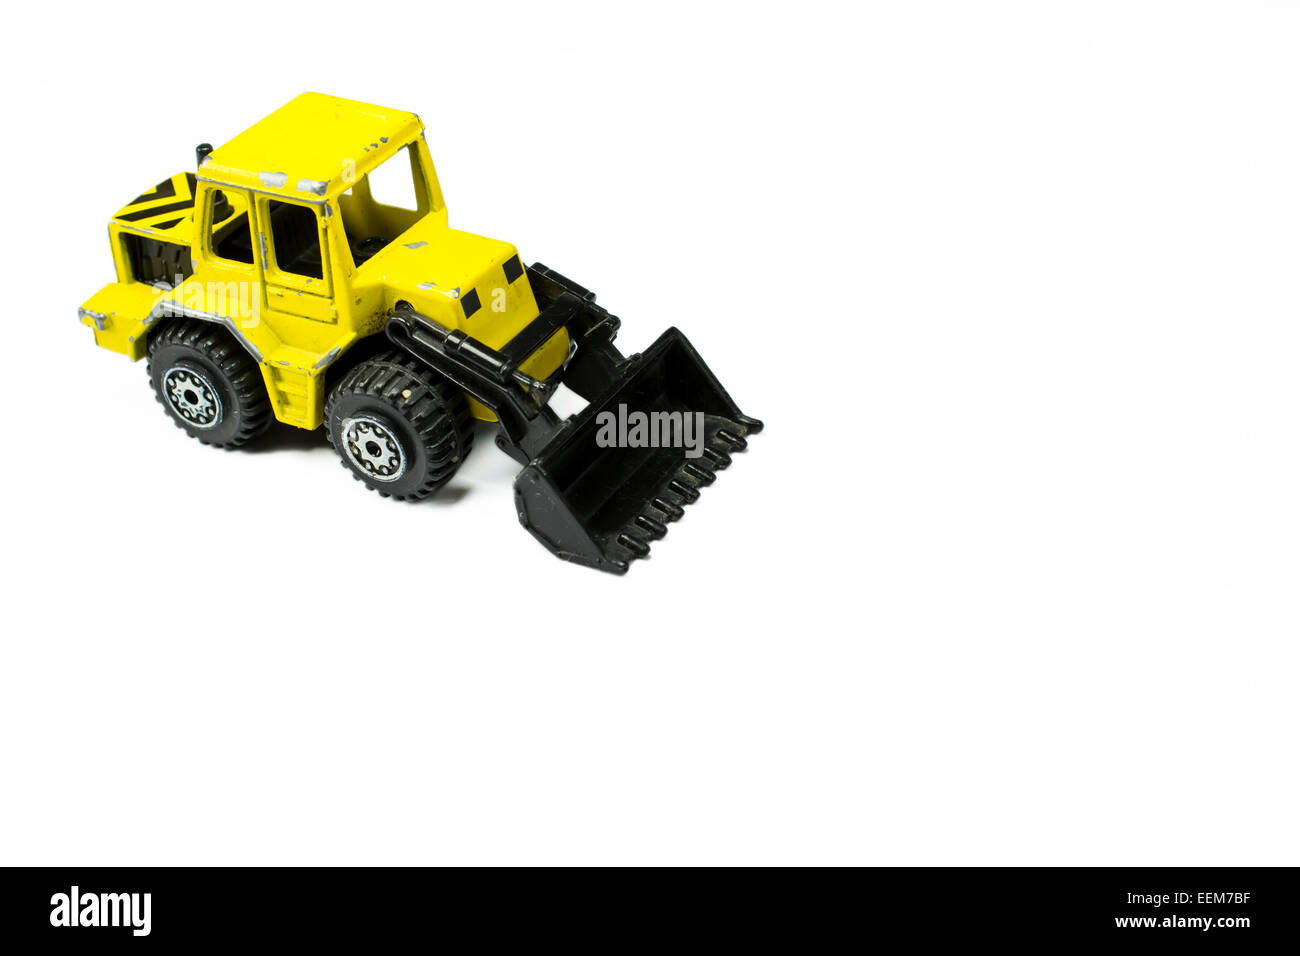 Scale Model Toy Of A Front Loader Construction Machinery On White Background